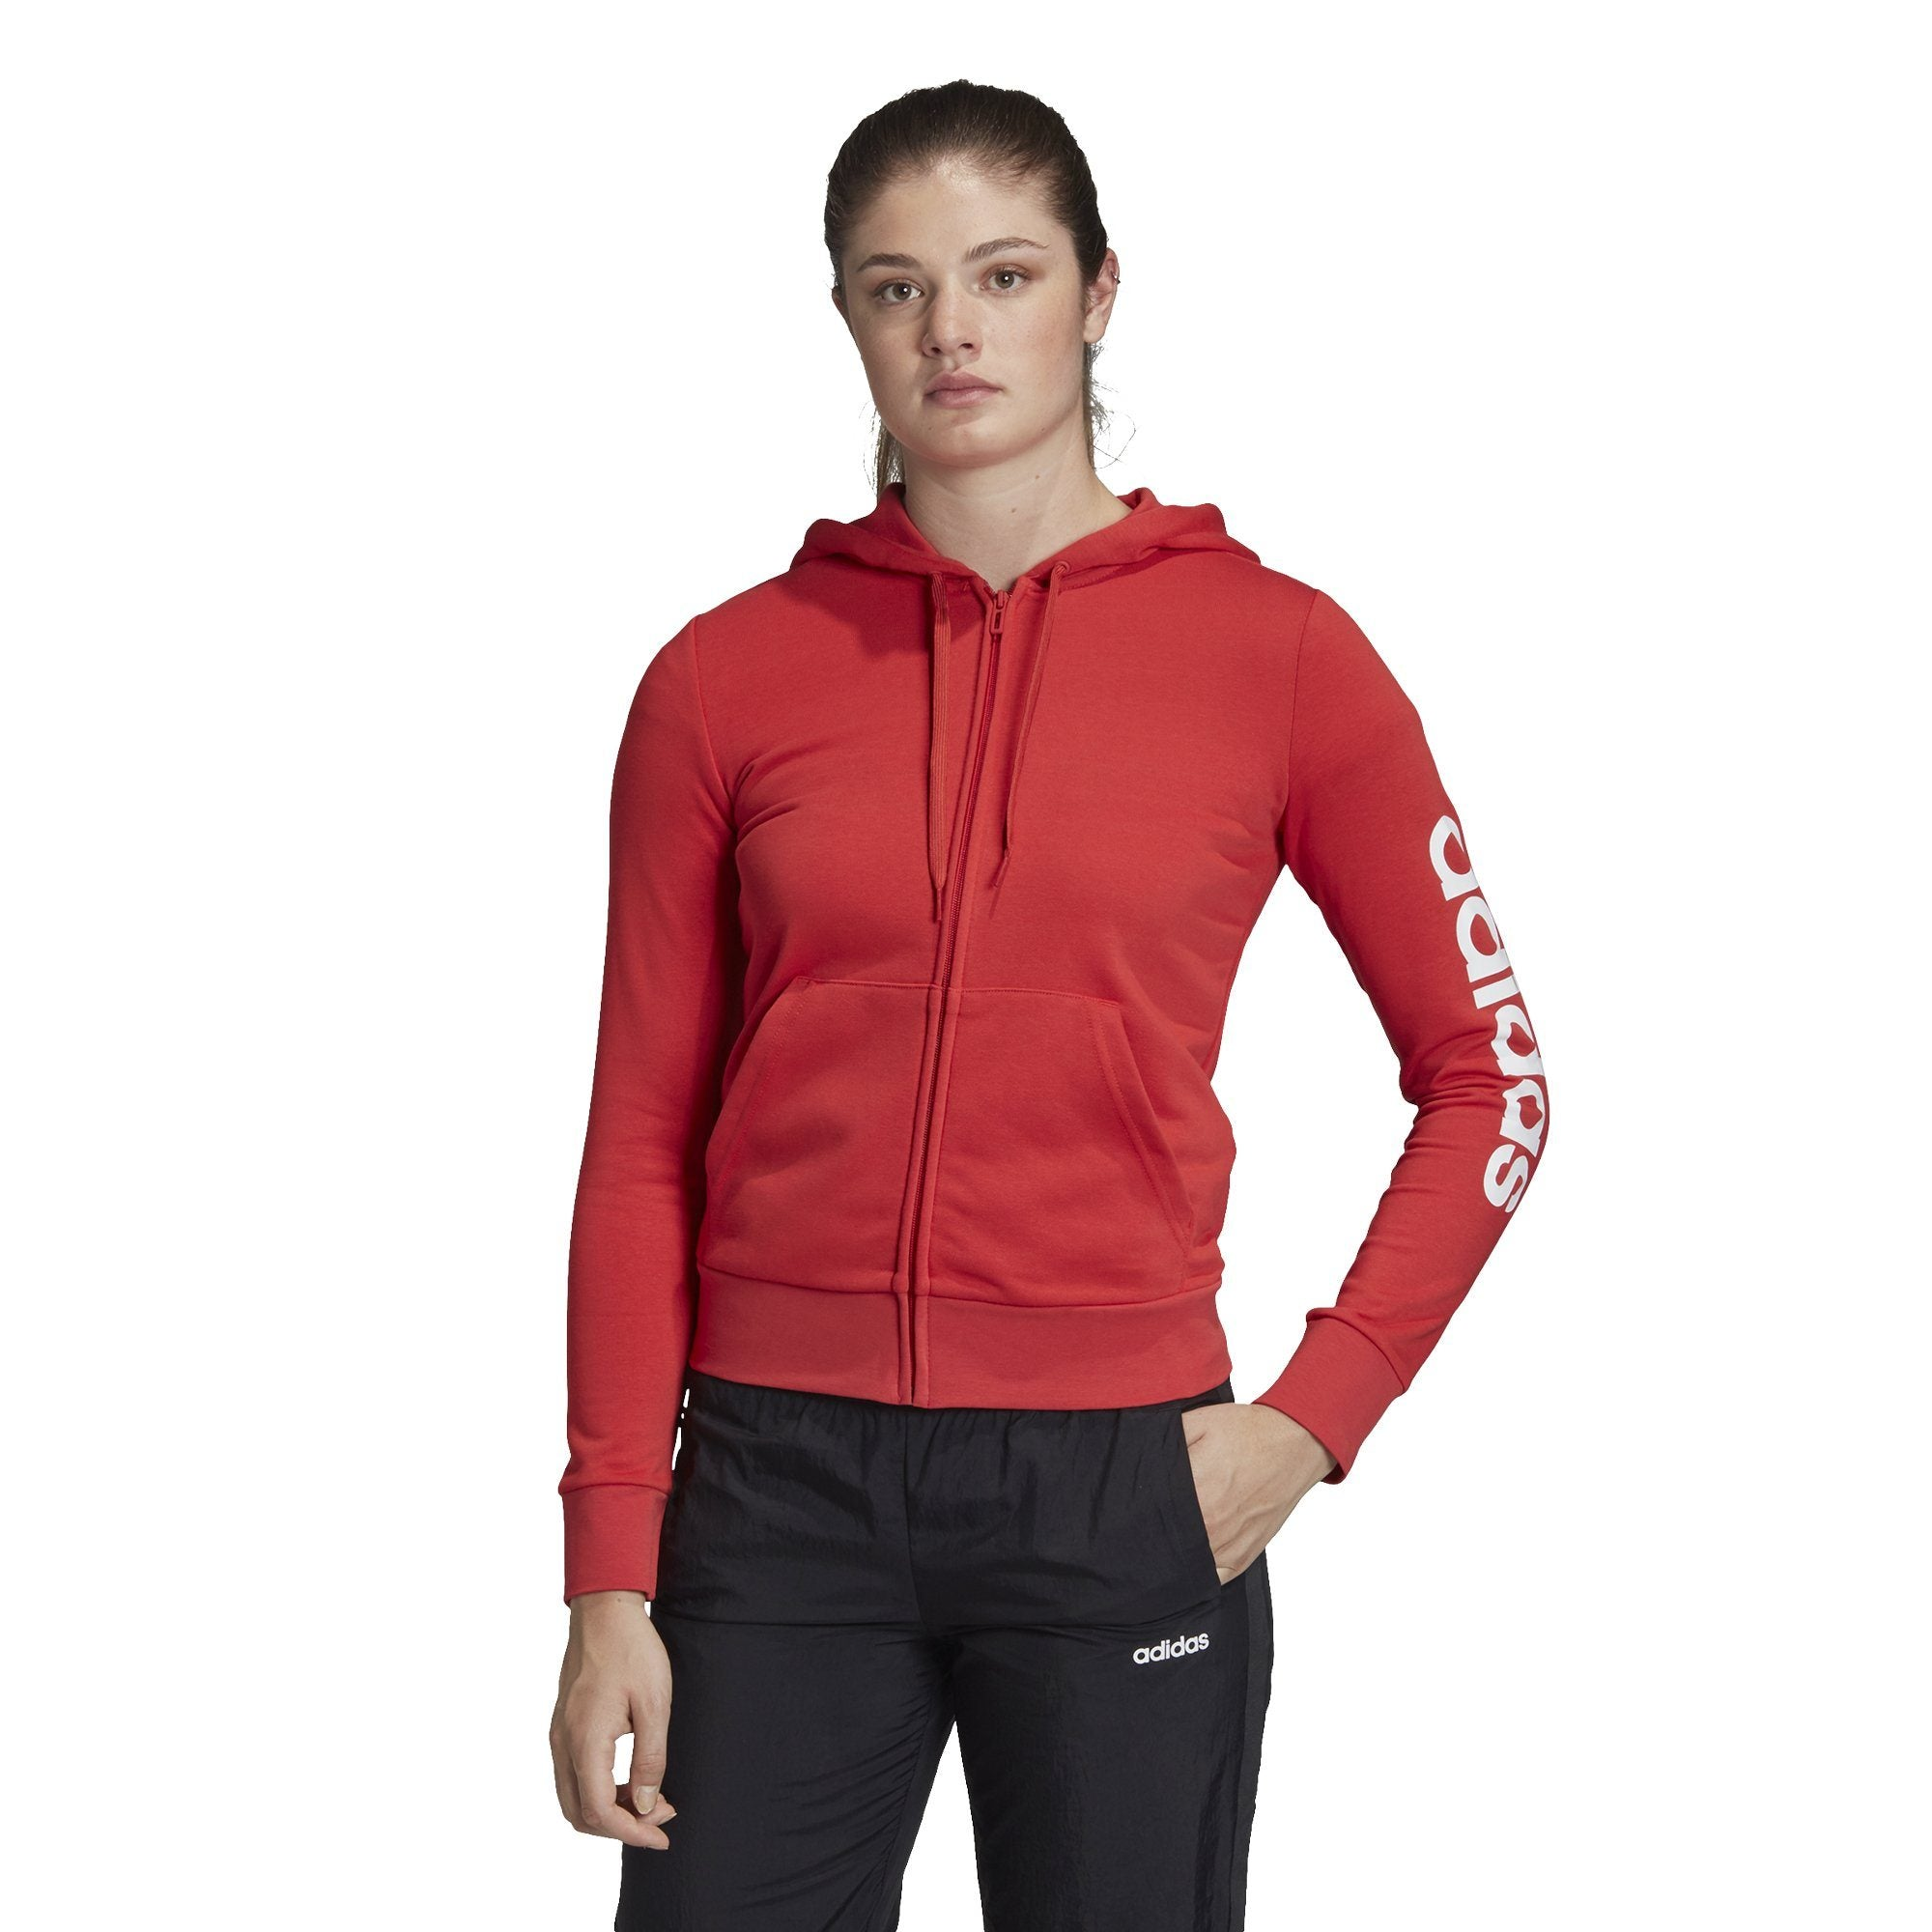 Adidas Womens Essentials Linear Full Zip Hoodie - glory red